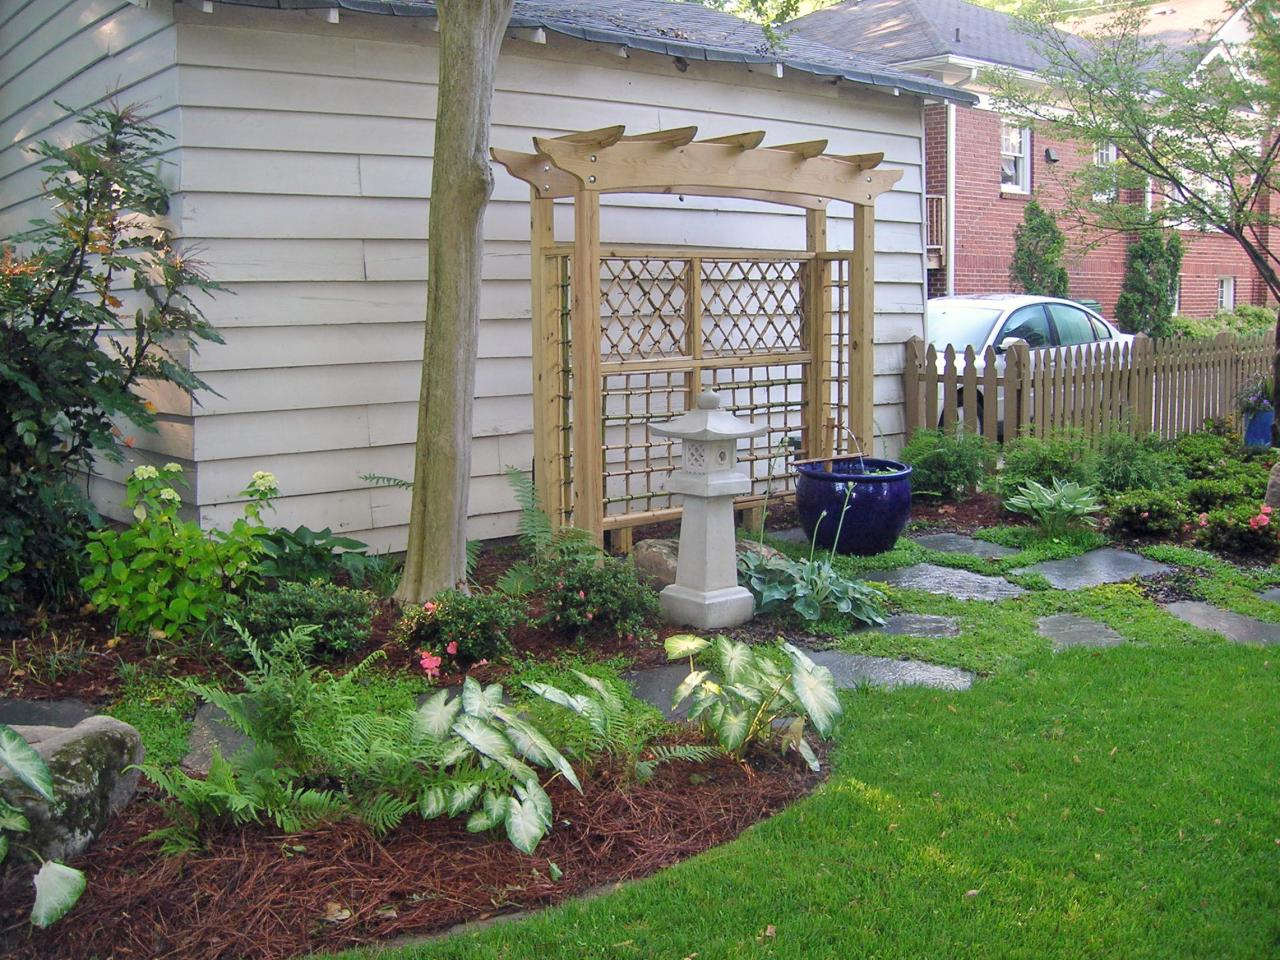 Landscape Solutions for Awkward Spaces DIY